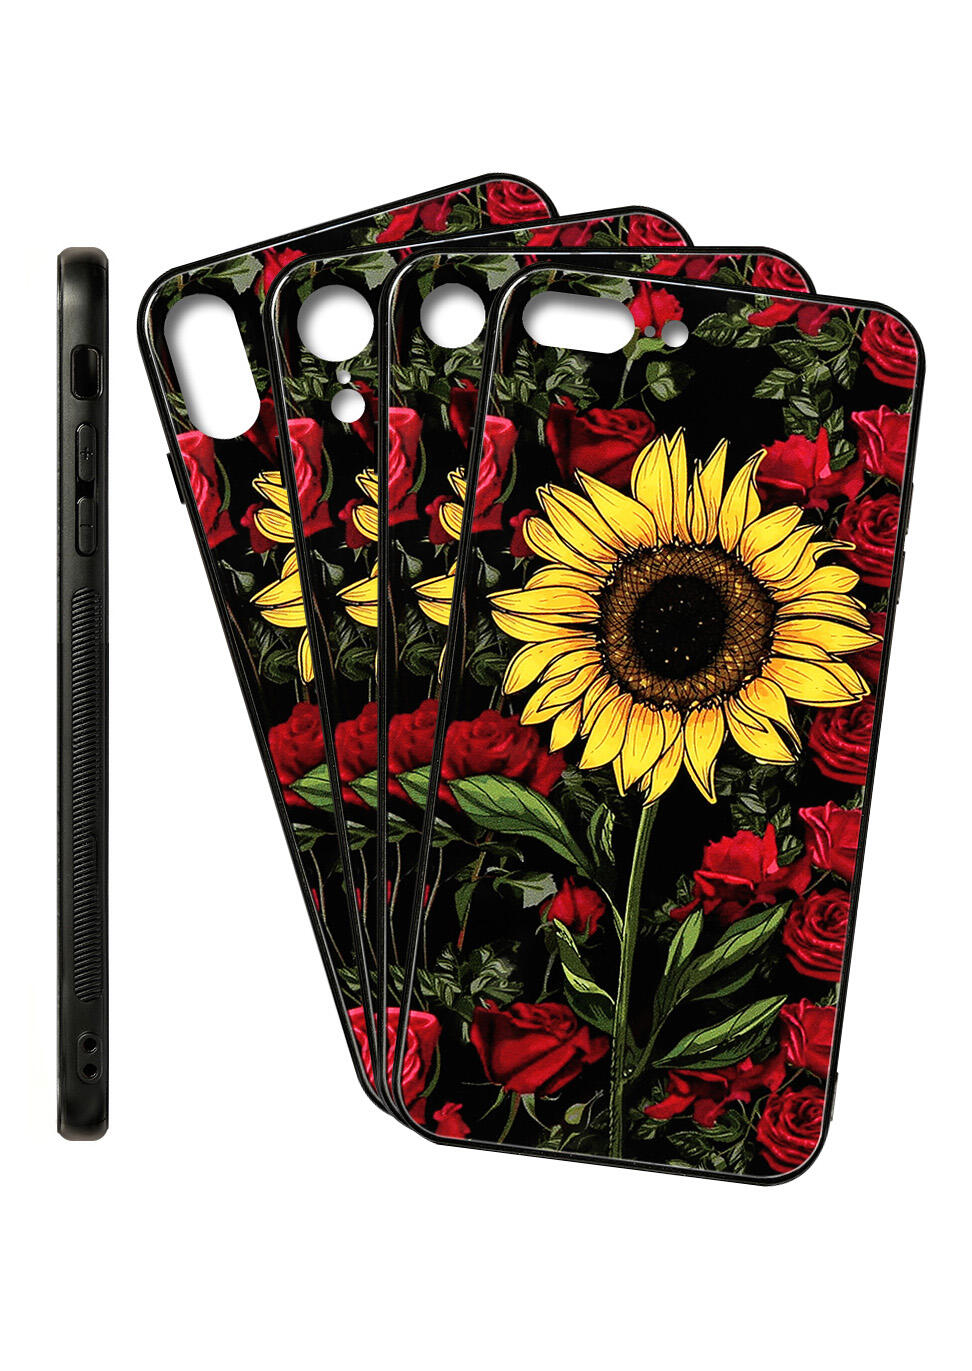 Sunflower and Rose Iphone XR / Iphone XS Max / Iphone 8 / Iphone 8 Silicone Protective Phone Case in Multicolor. Size: iPhone XS Max